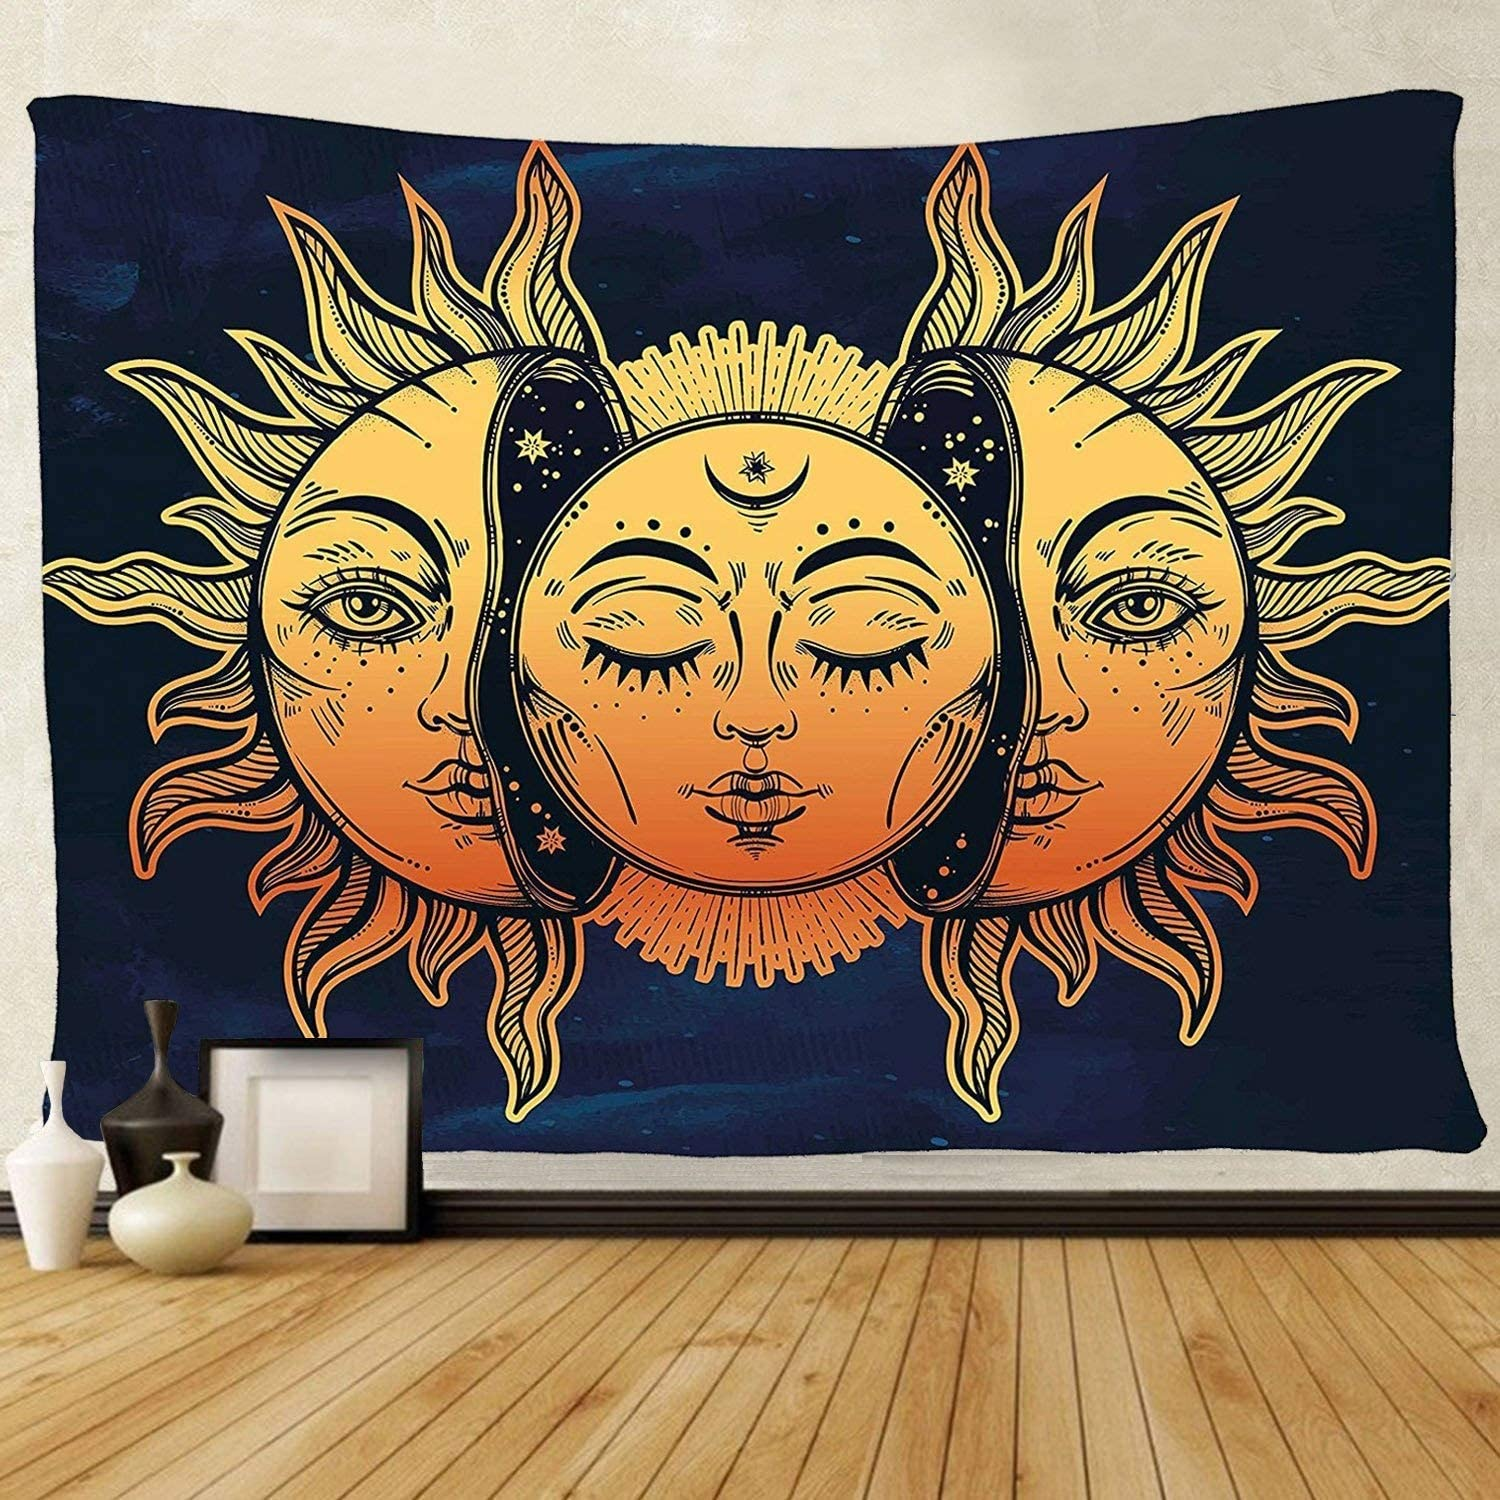 Art Wall Tapestries Wall Hanging Moon and Sun Decorative Tapestries Home Decor